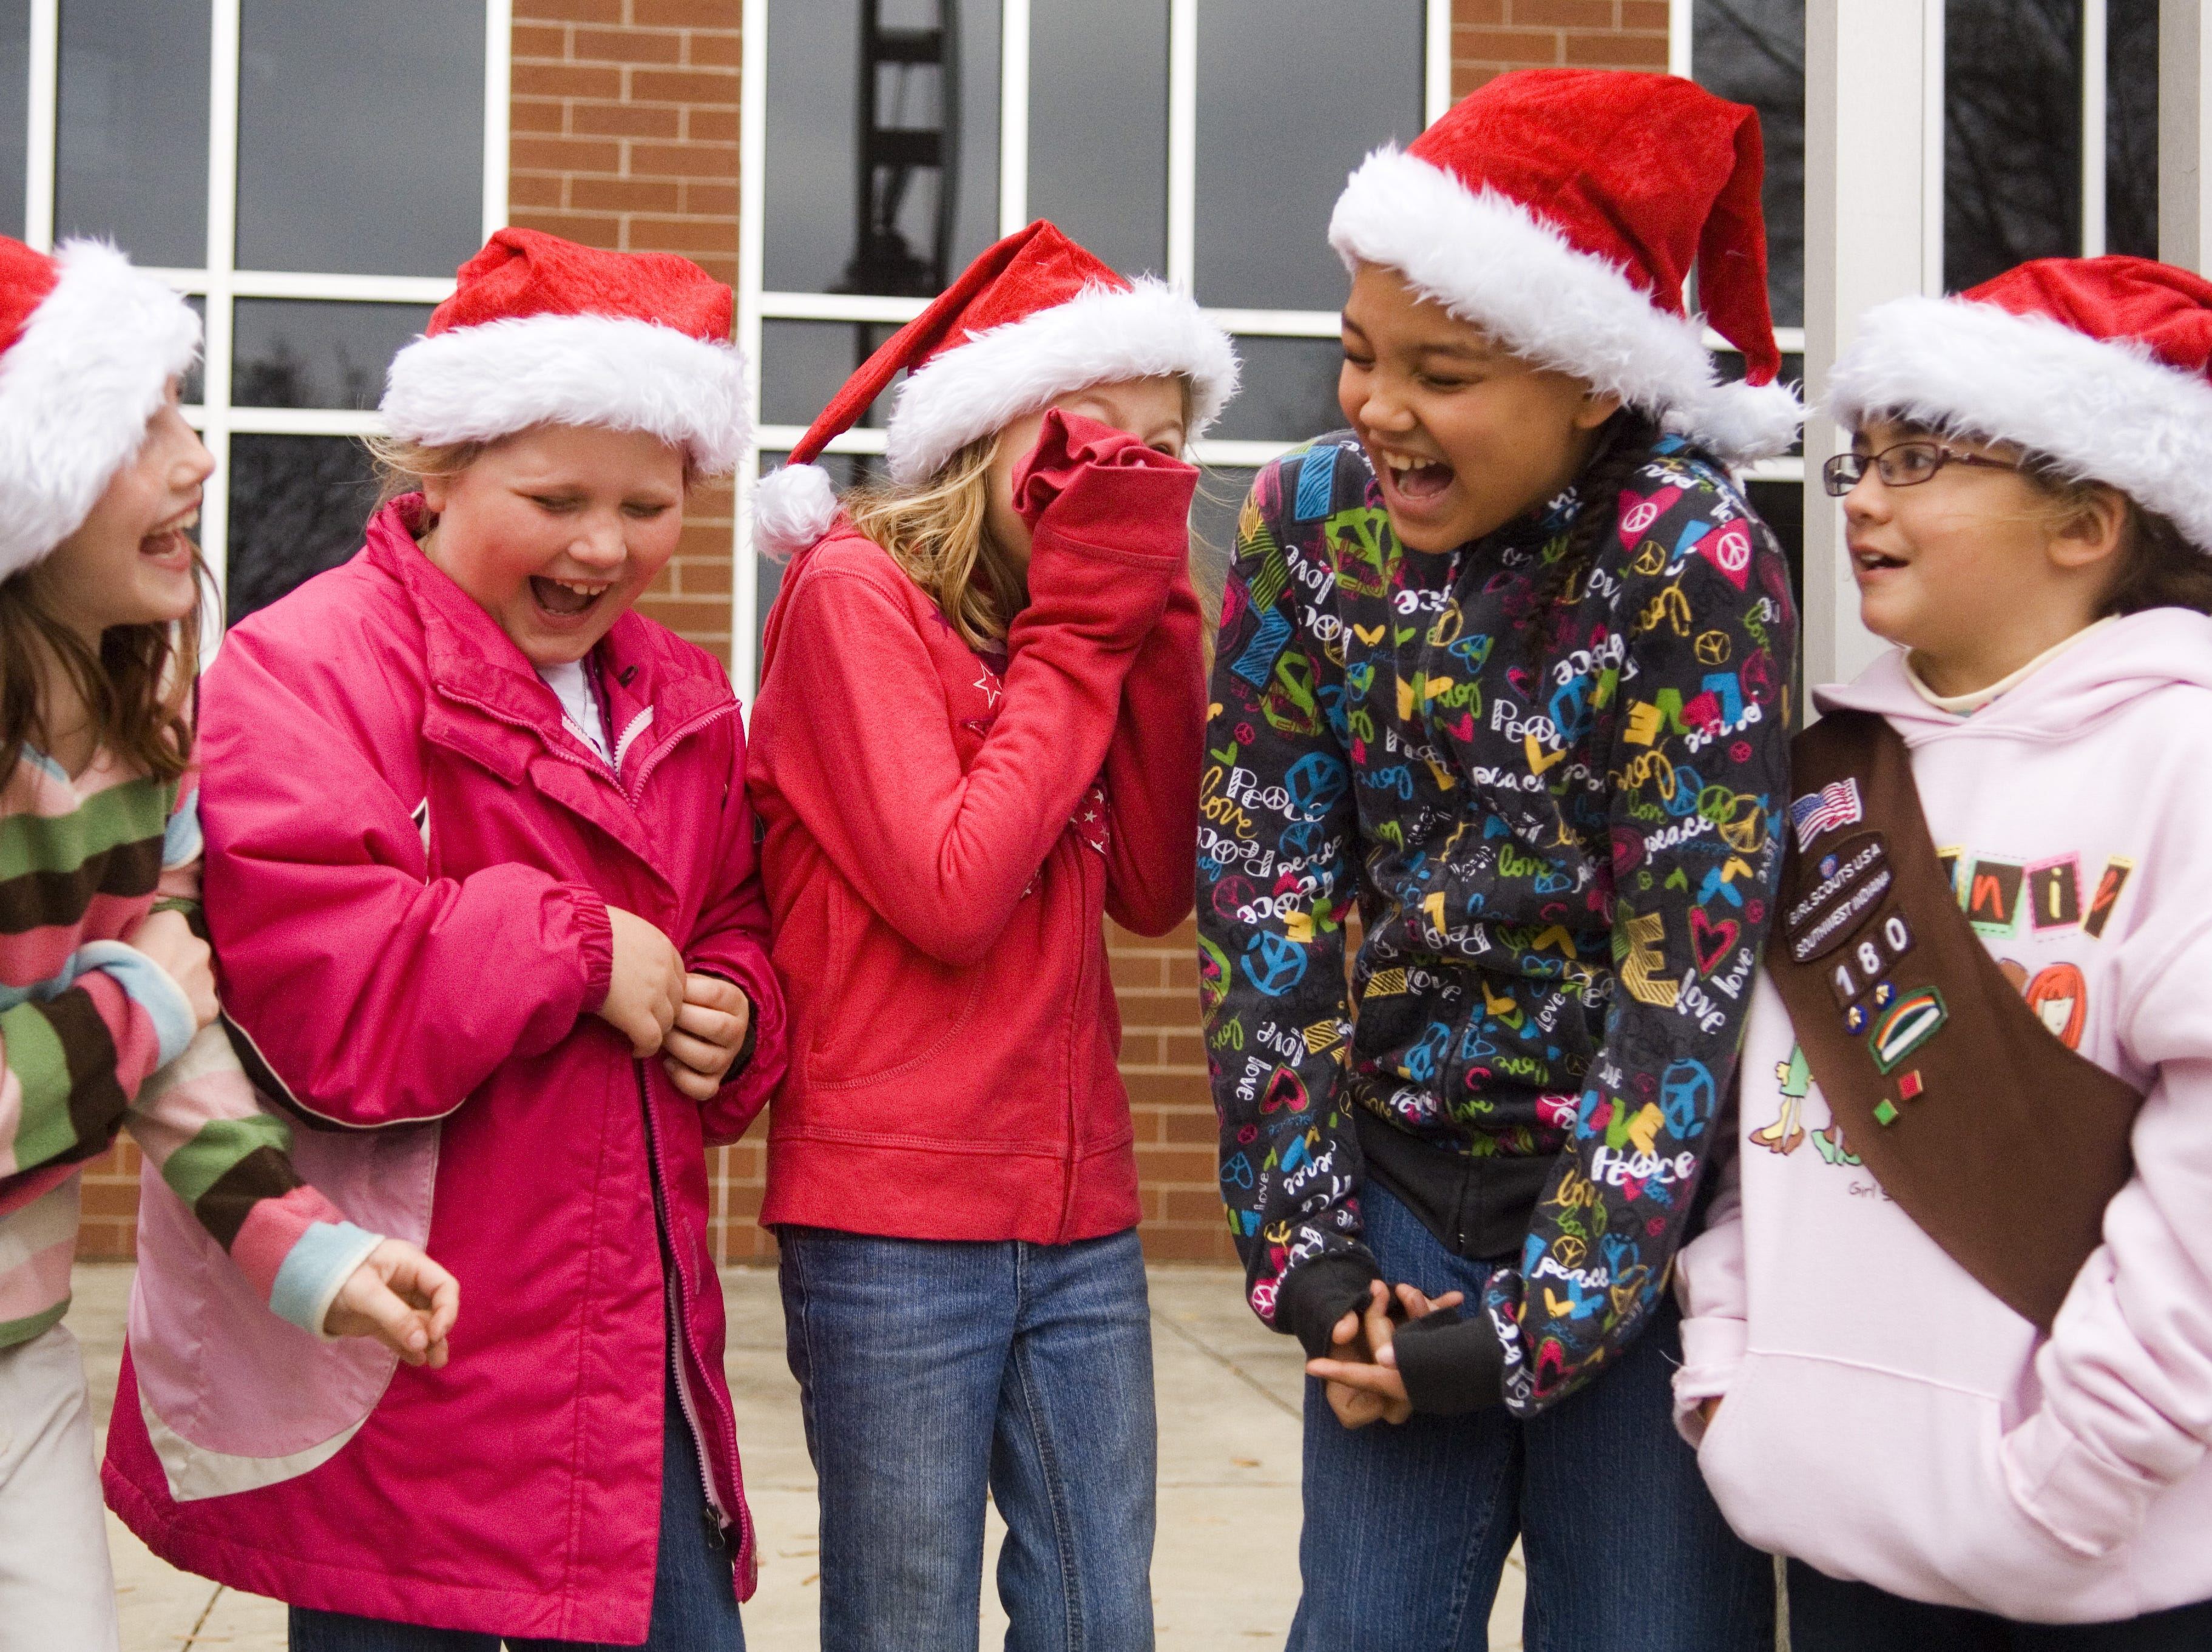 From left to right, Alexis Thompson, Morgan Leff, Claire Steinkuhl, Kaitlyn Johnson, and Lucy Belwood, allof Brownie Troop 180, laugh as they wait for one of their leaders before marching in the 2010 annual Downtown Evansville Holiday Parade on Sunday, November 21, 2010.